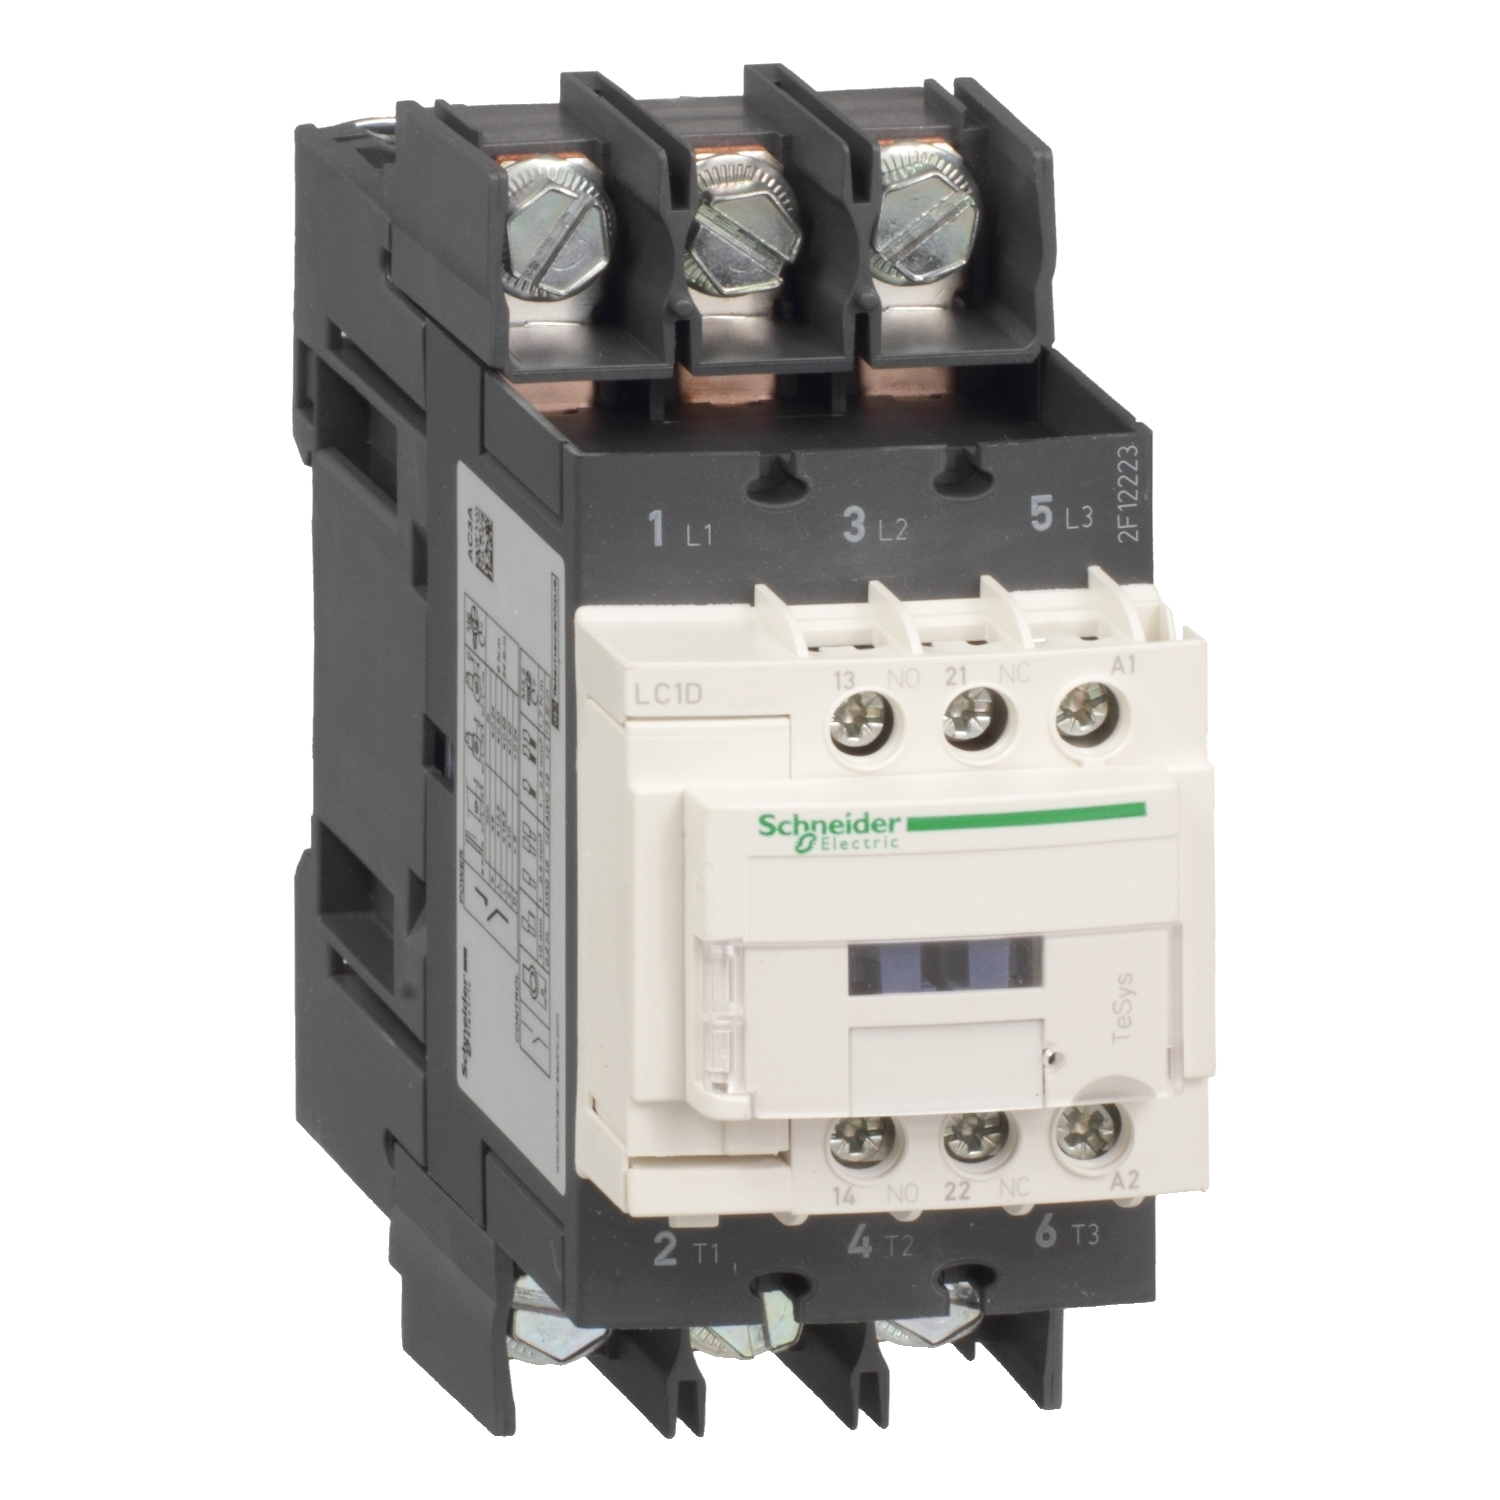 New authentic LC1D65A6U7 coil 240VAC 50 / 60Hz three-level contactor 65A load 11KW-400V standard TeSys D ring terminal